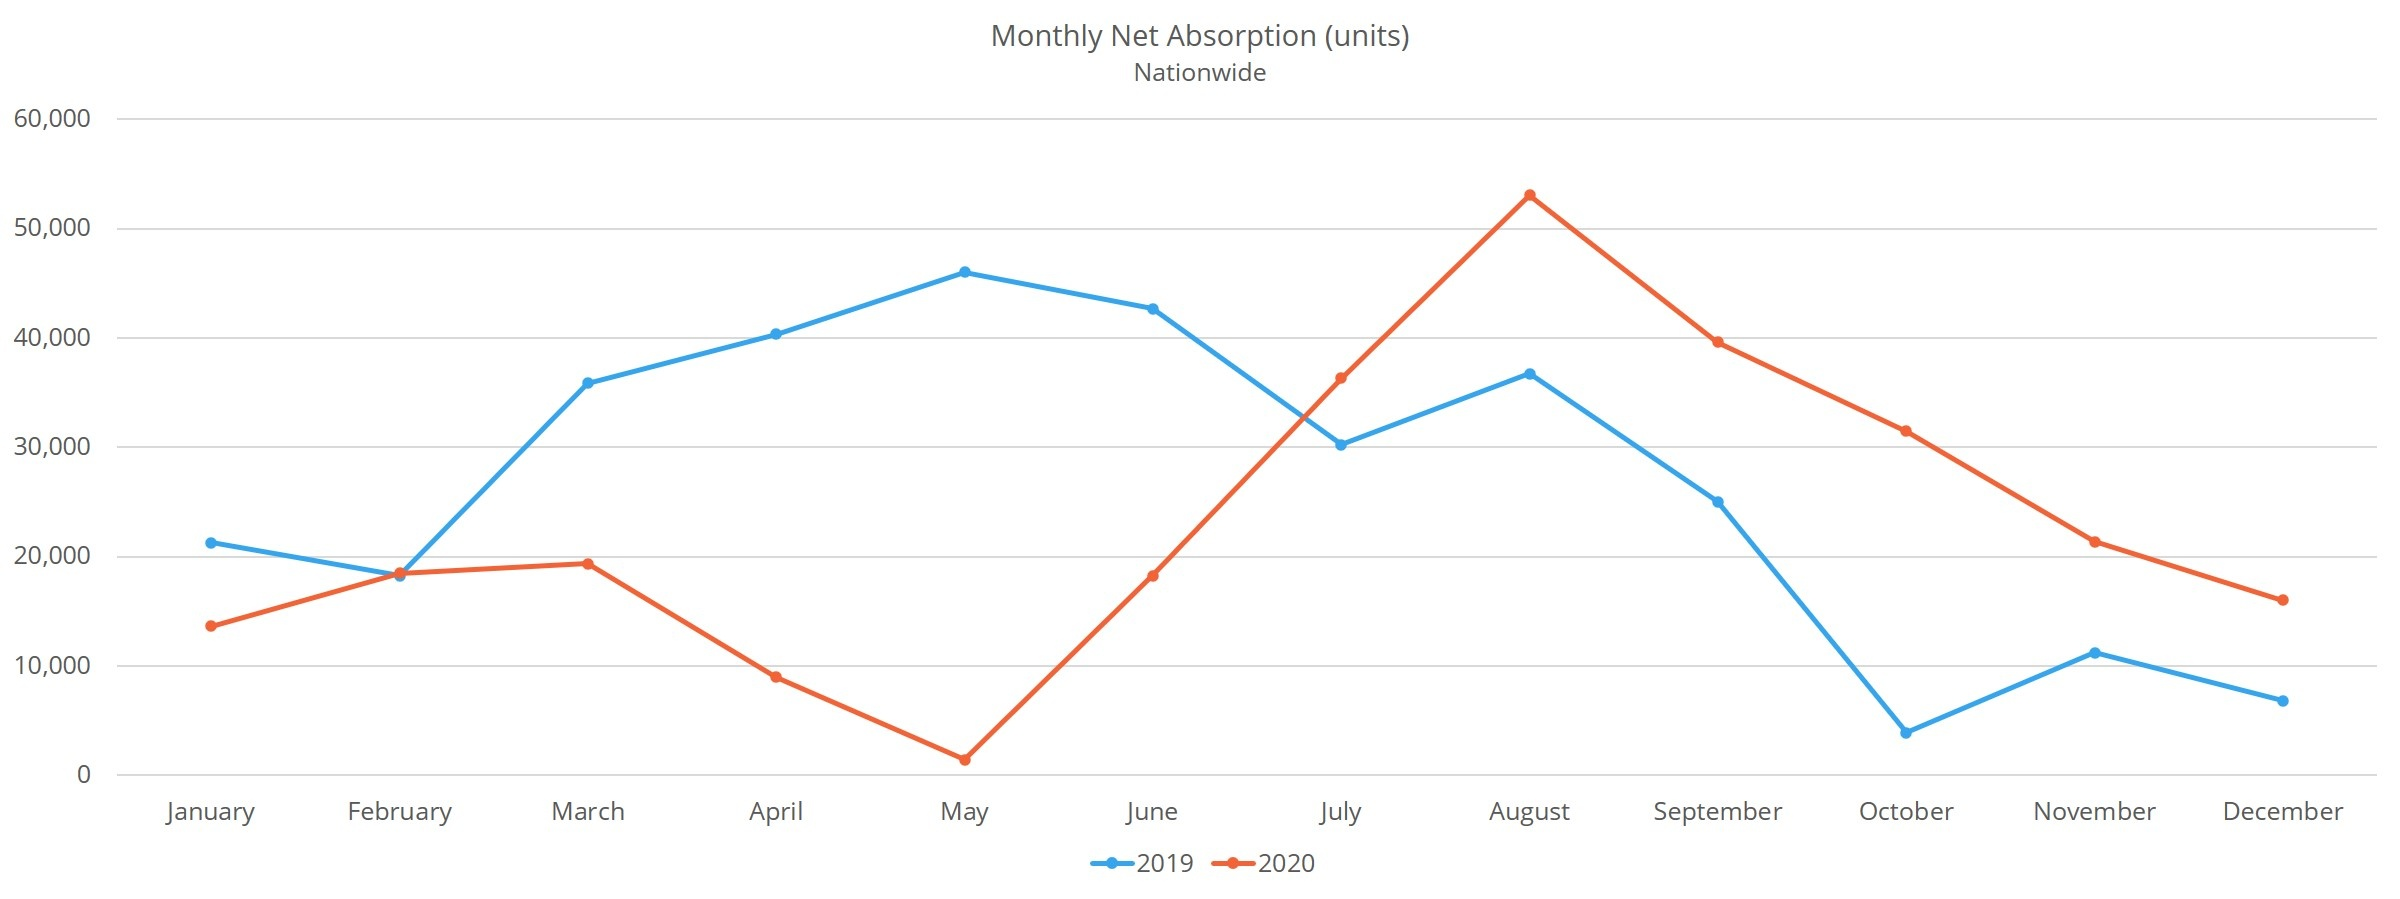 Monthly Net Absorption